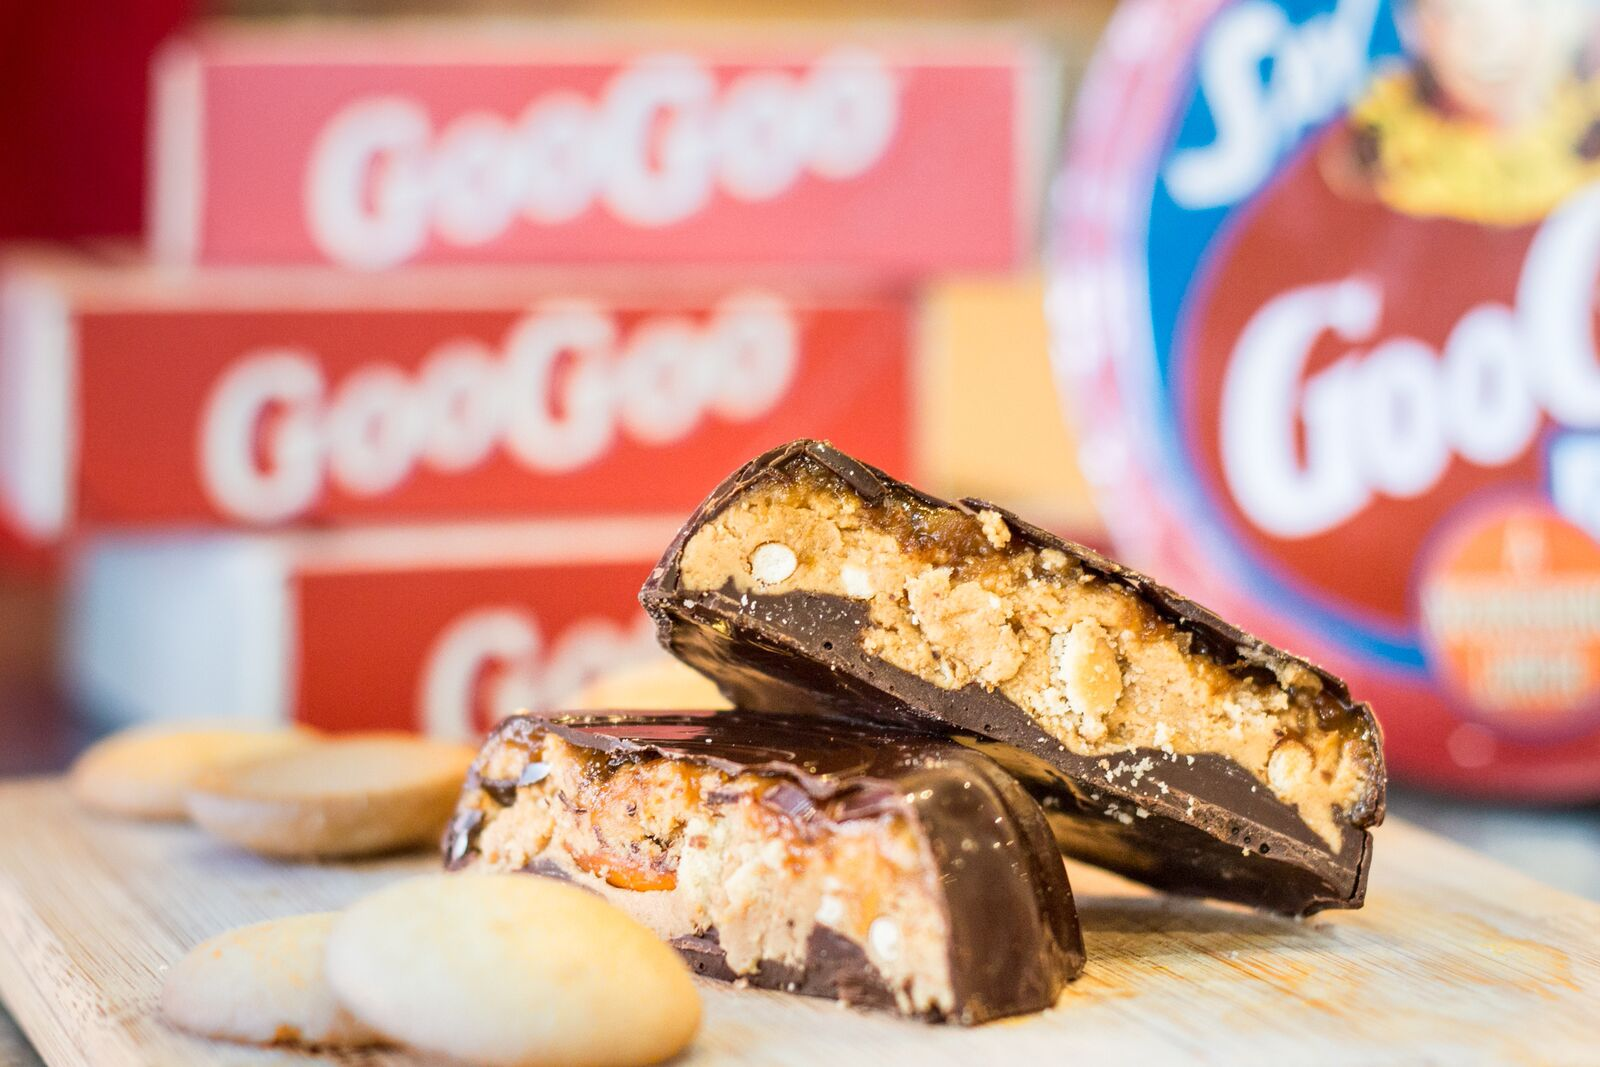 Goo Goo Summer Chef Series: The Gertie Image